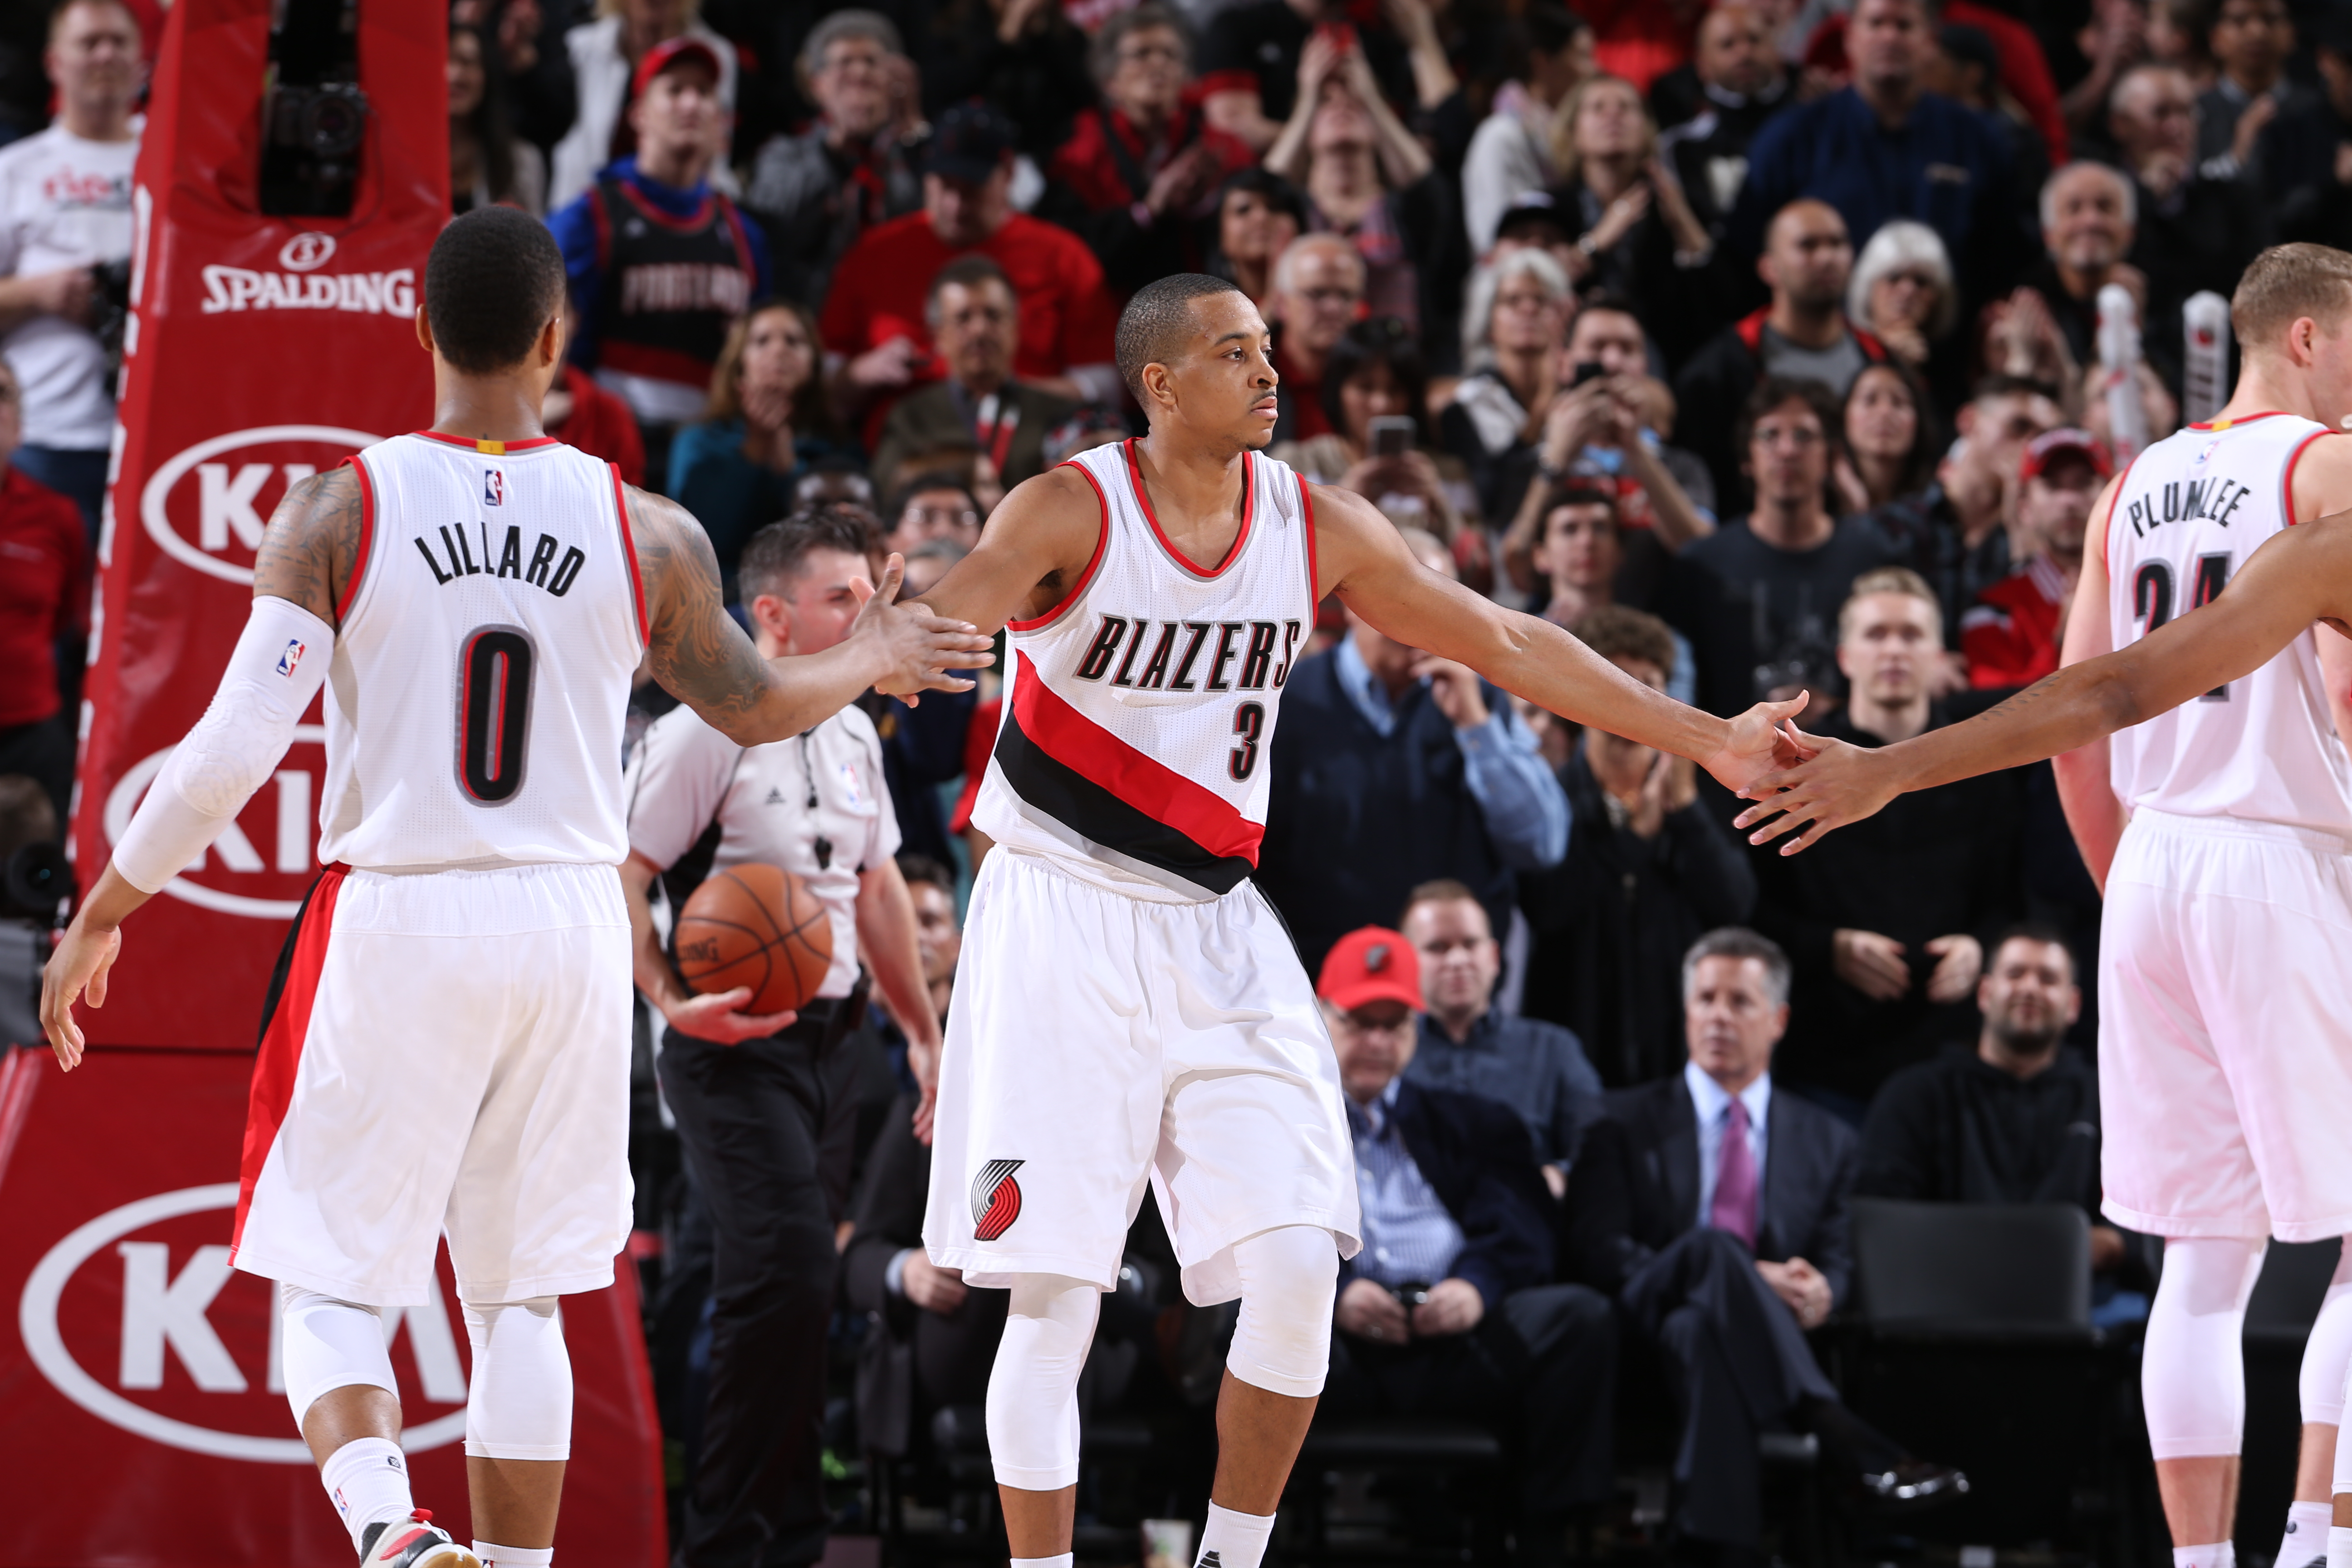 PORTLAND, OR - FEBRUARY 21:  C.J. McCollum #3 of the Portland Trail Blazers high fives teammate sagainst the Utah Jazz on February 21, 2016 at the Moda Center in Portland, Oregon. (Photo by Sam Forencich/NBAE via Getty Images)